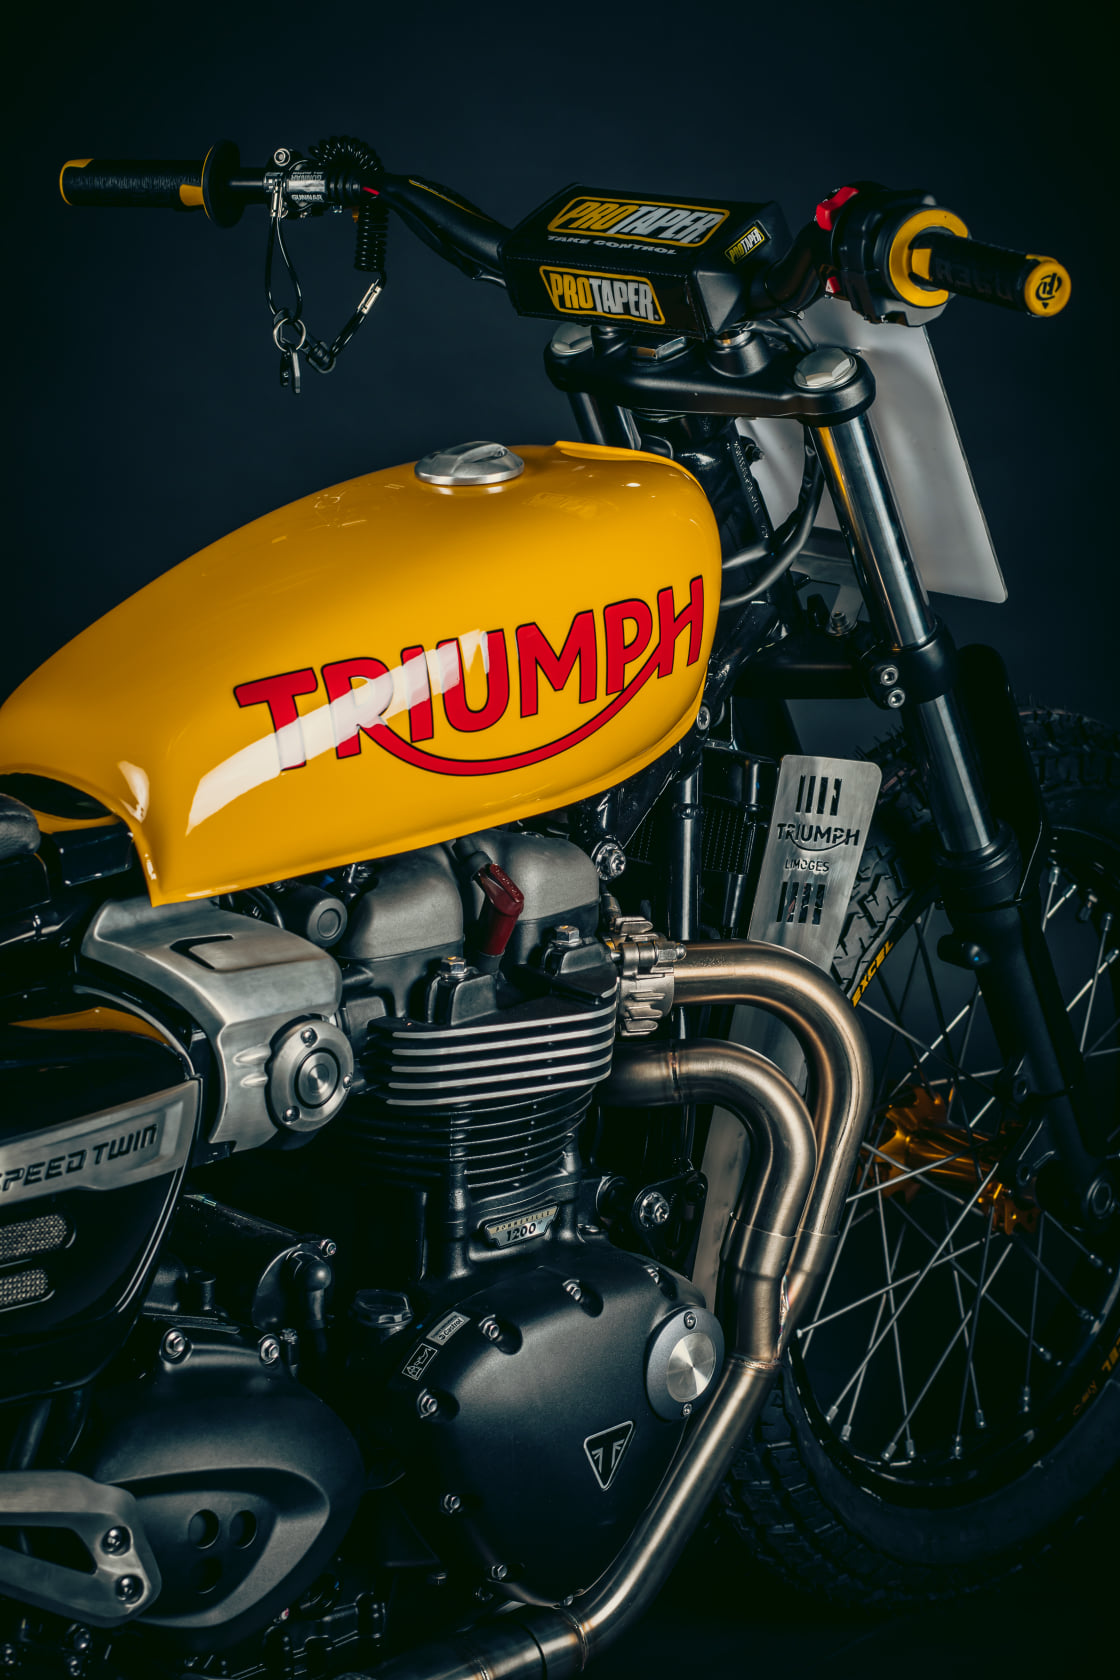 Triumph Speed Twin Project Limoges flat track